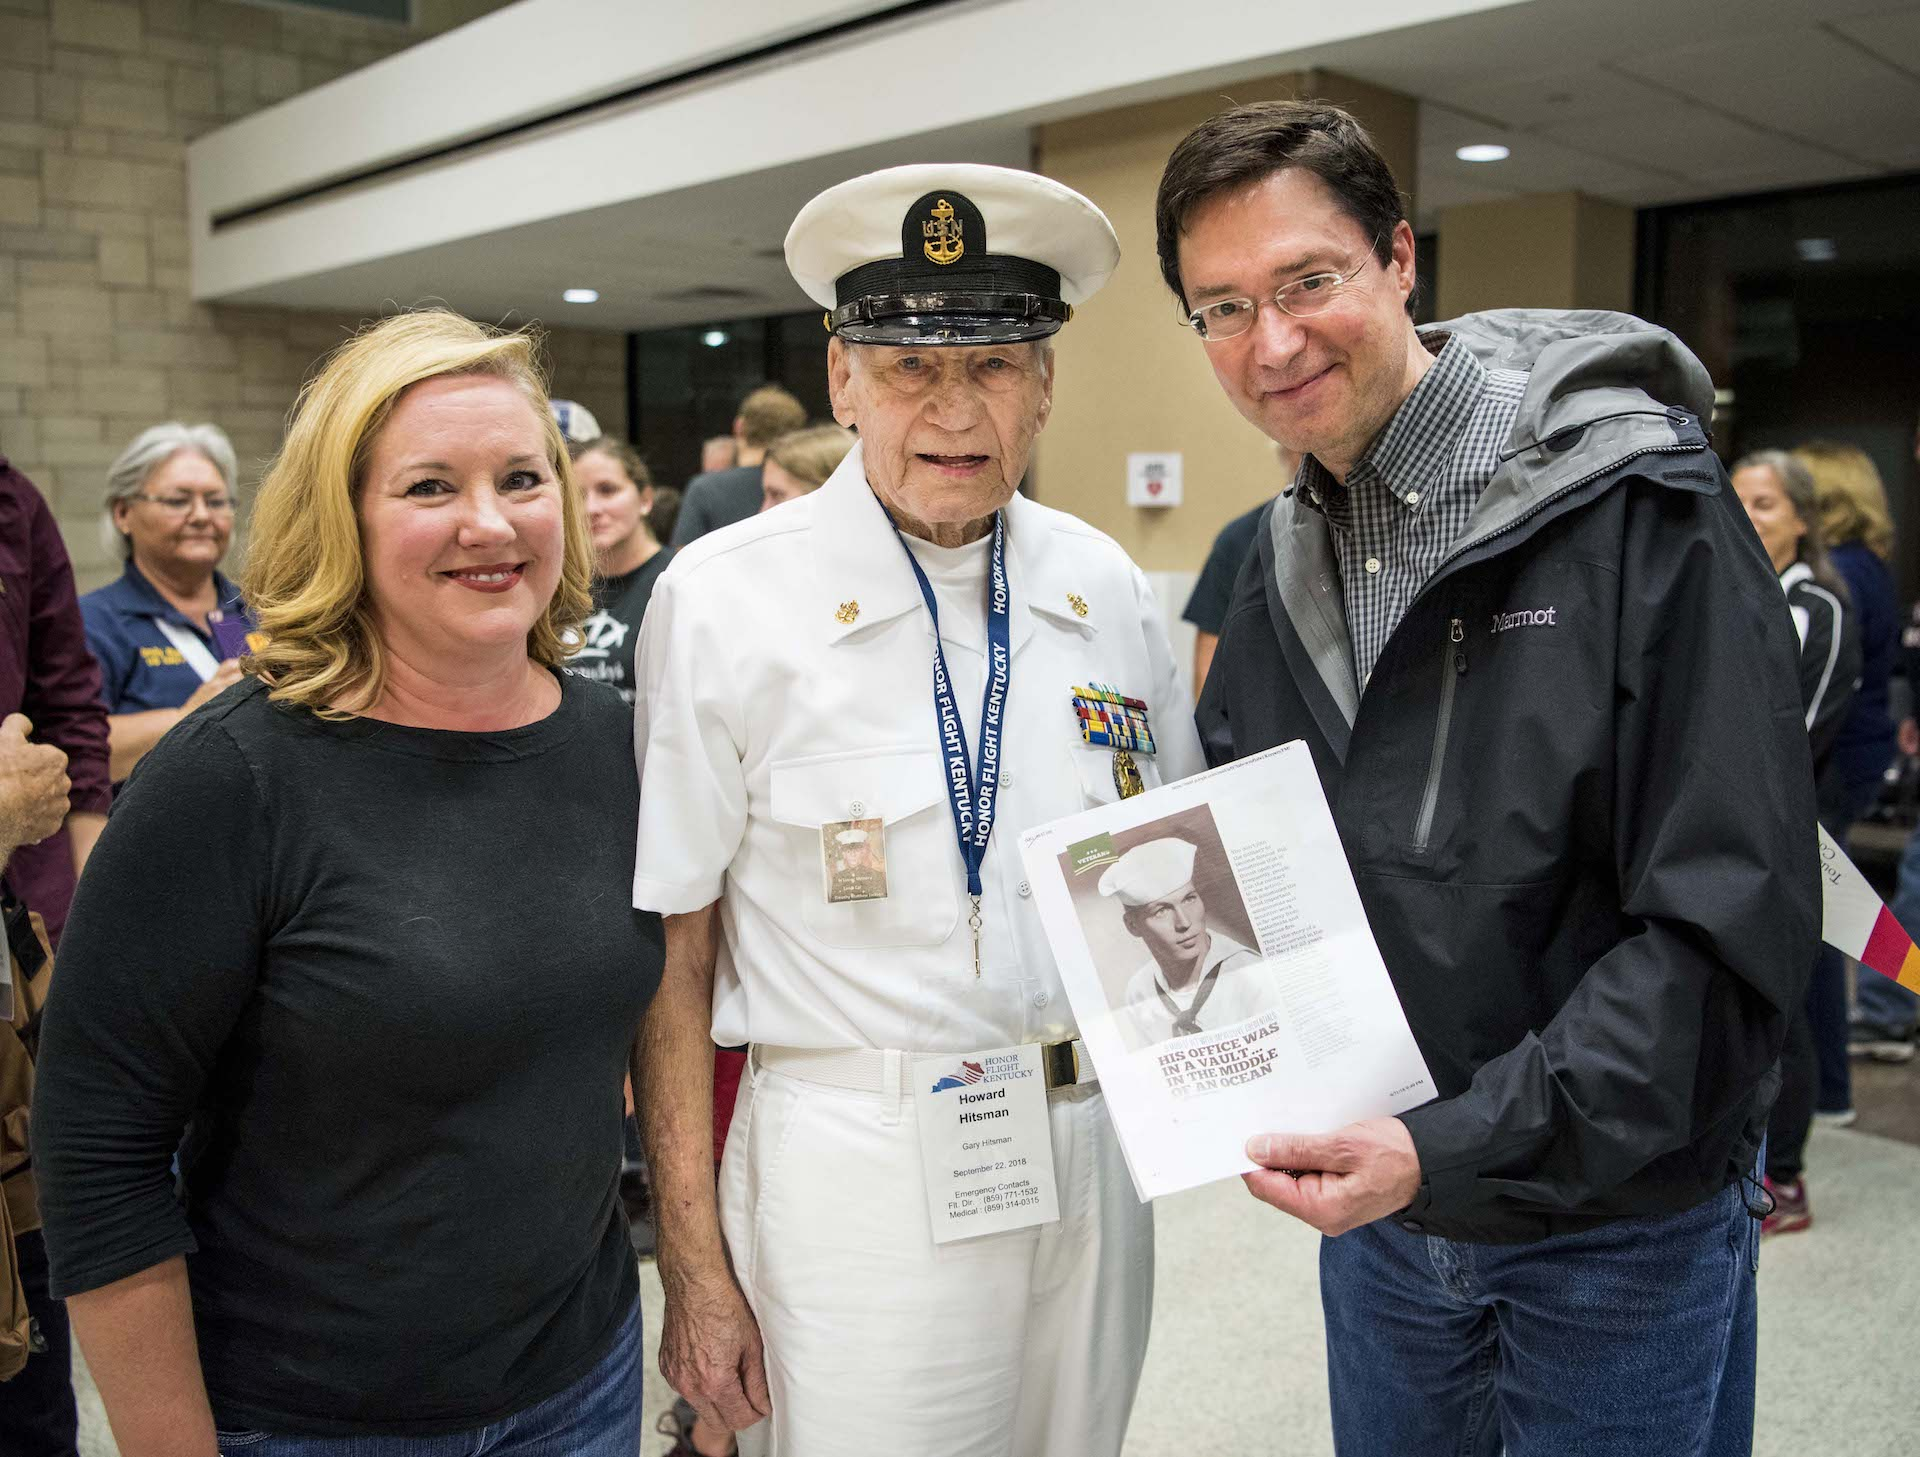 Dr. Gurley was among the hundreds who welcomed Howard home. Howard smiles for a photo with him while being welcomed home from his Honor Flight.